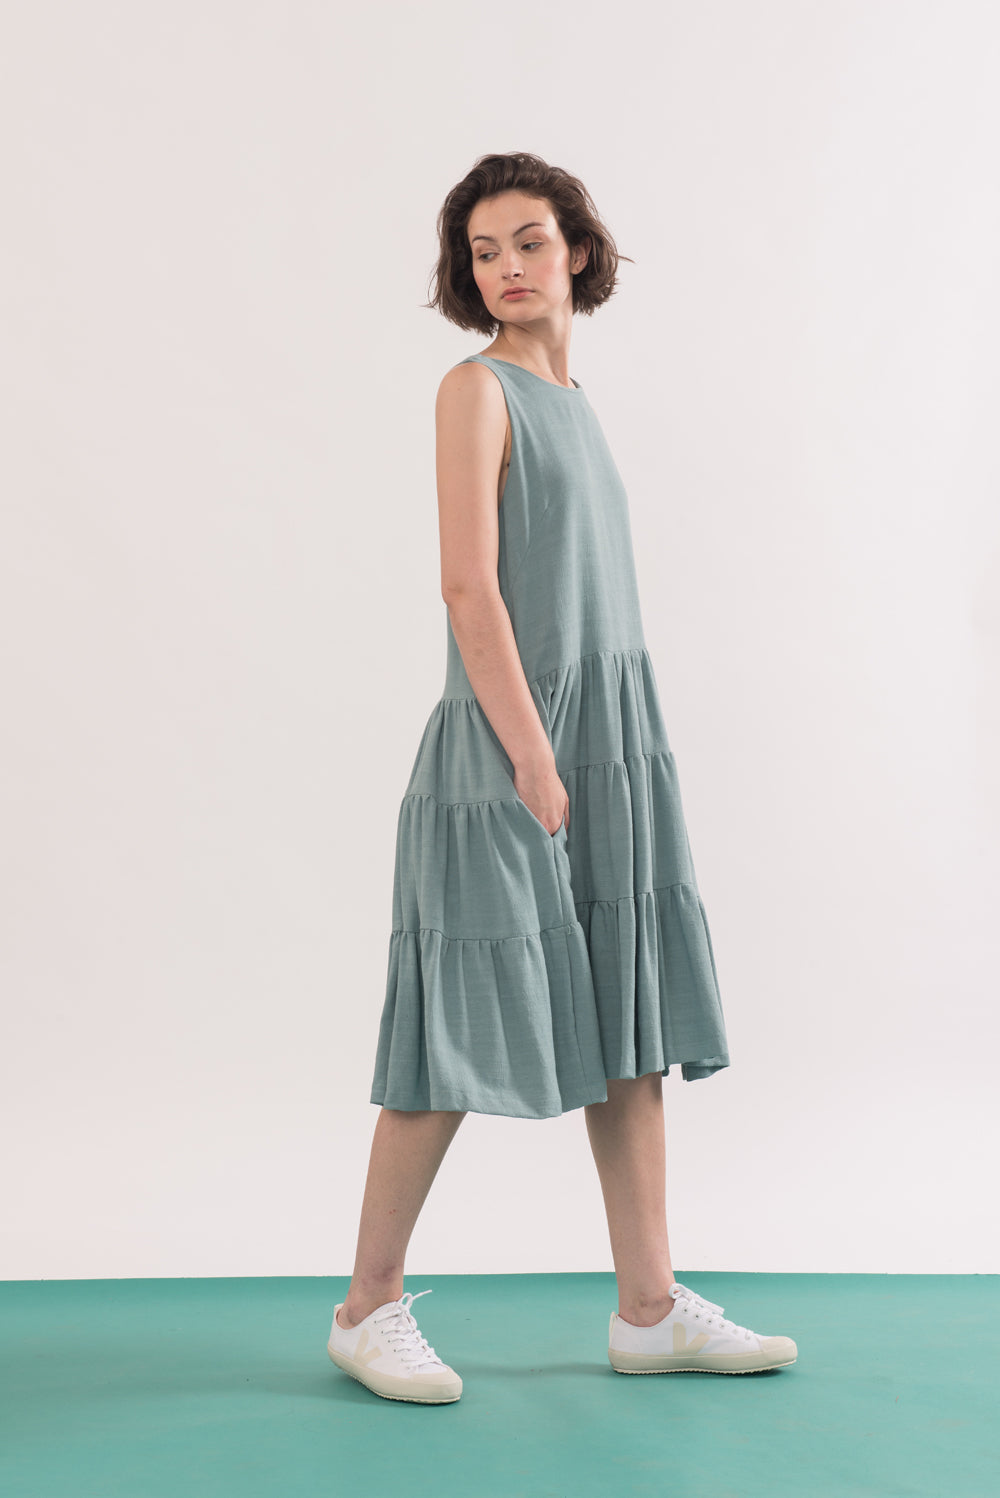 Chagall Dress by Jennifer Glasgow, side view, Seafoam, sleeveless, three-tiered, pockets, rayon and linen, sizes XS to XL, made in Montreal